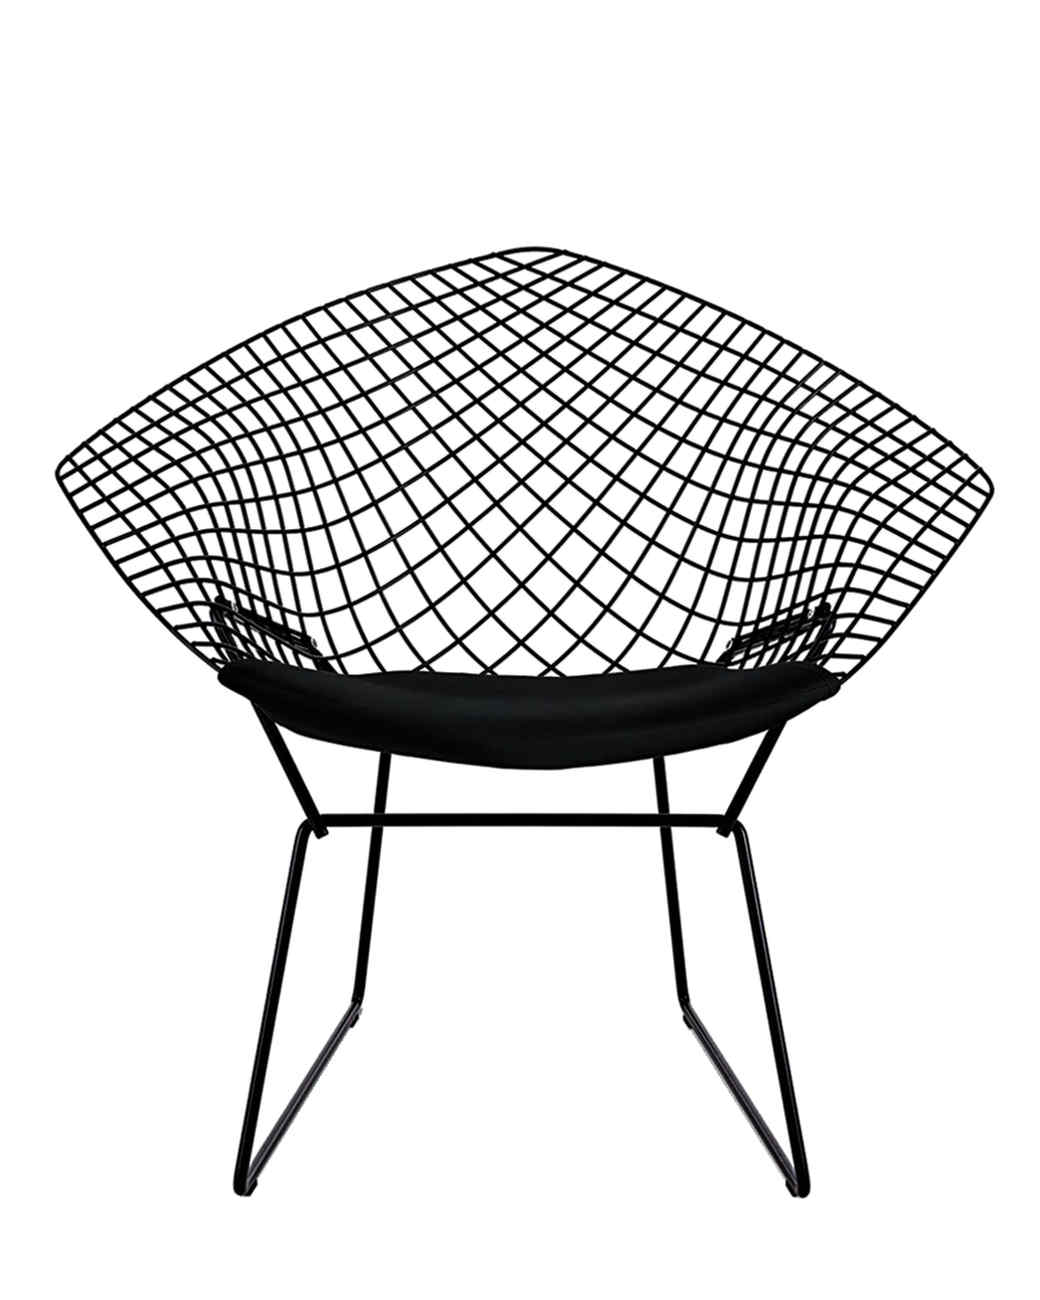 chair-s111255-pd-13224-black-black.jpg